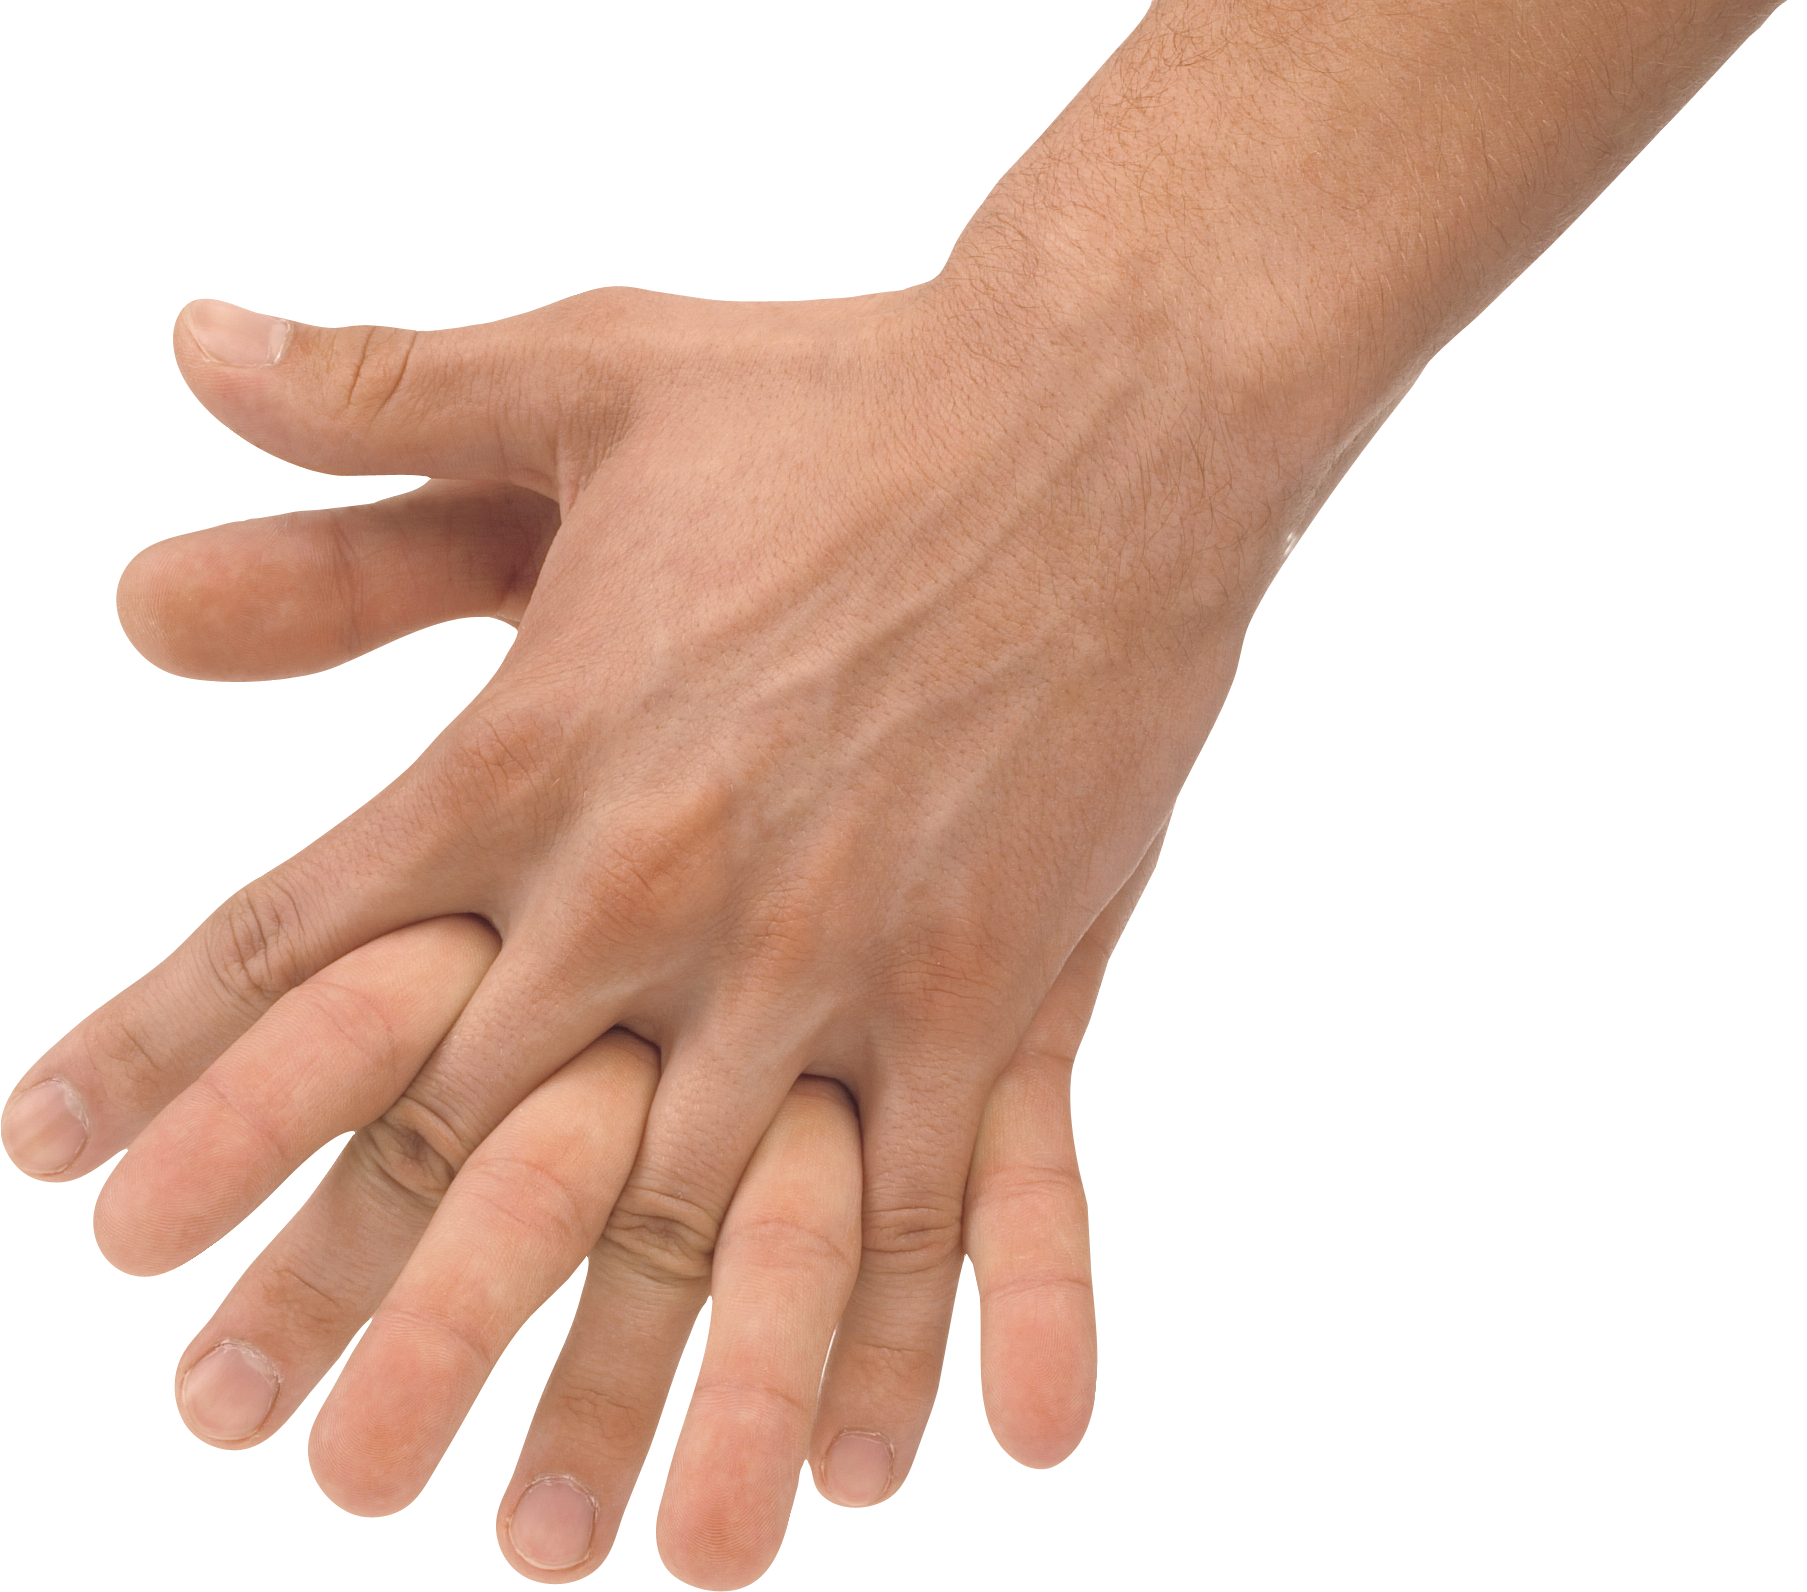 Hands png image purepng. Nails clipart woman's hand